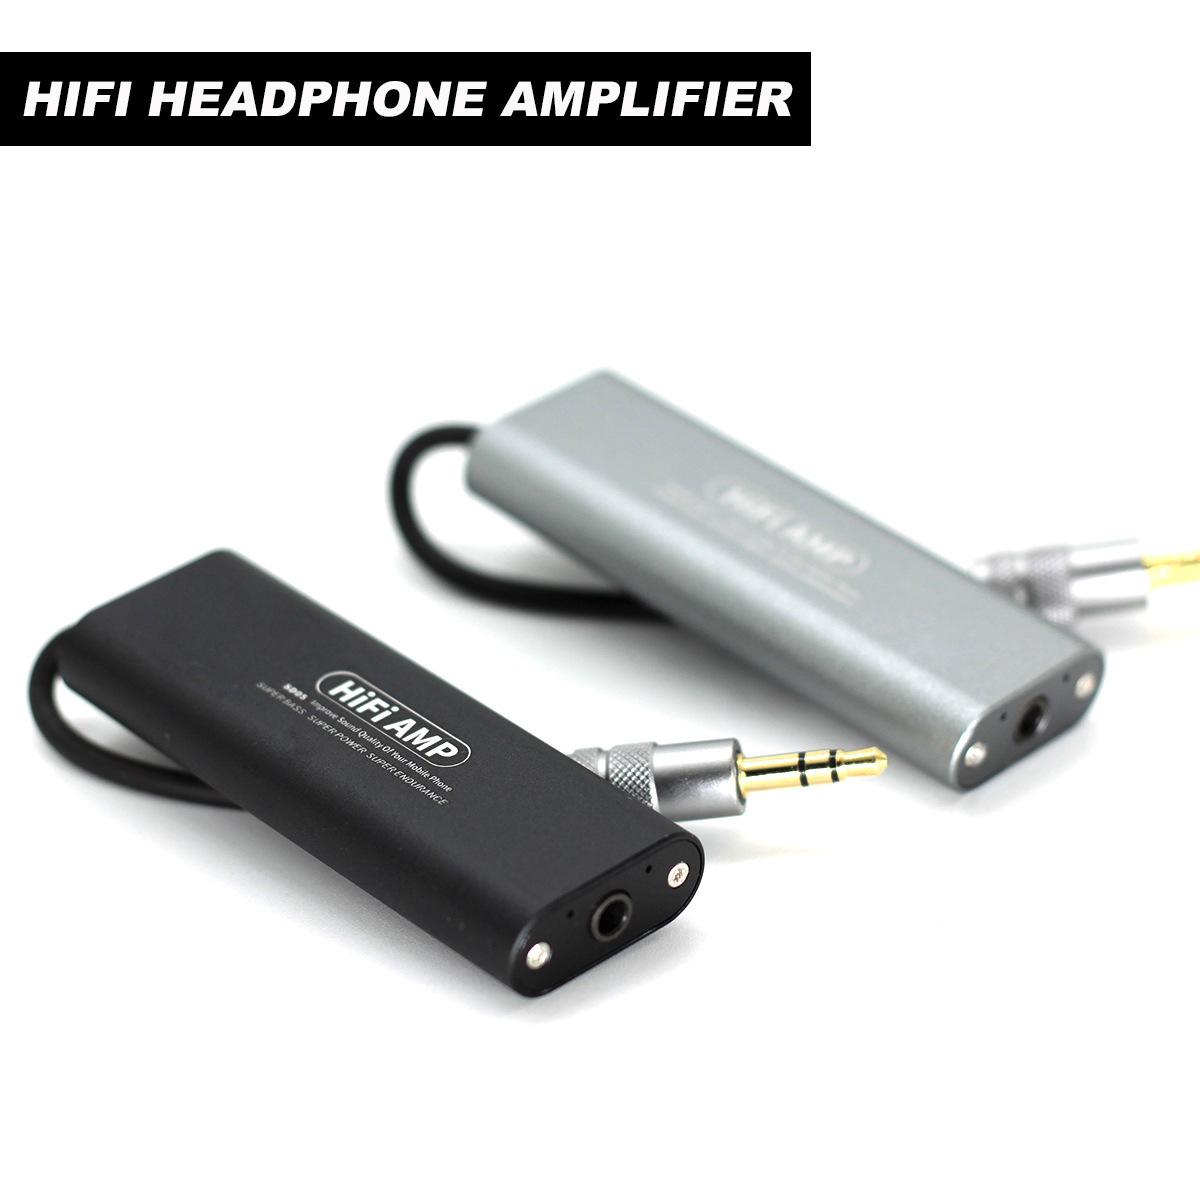 Hifi Headphone Amplifier Mobile Phonestereo Head Phone Circuit Best Car Stereo From Diemni85 2513